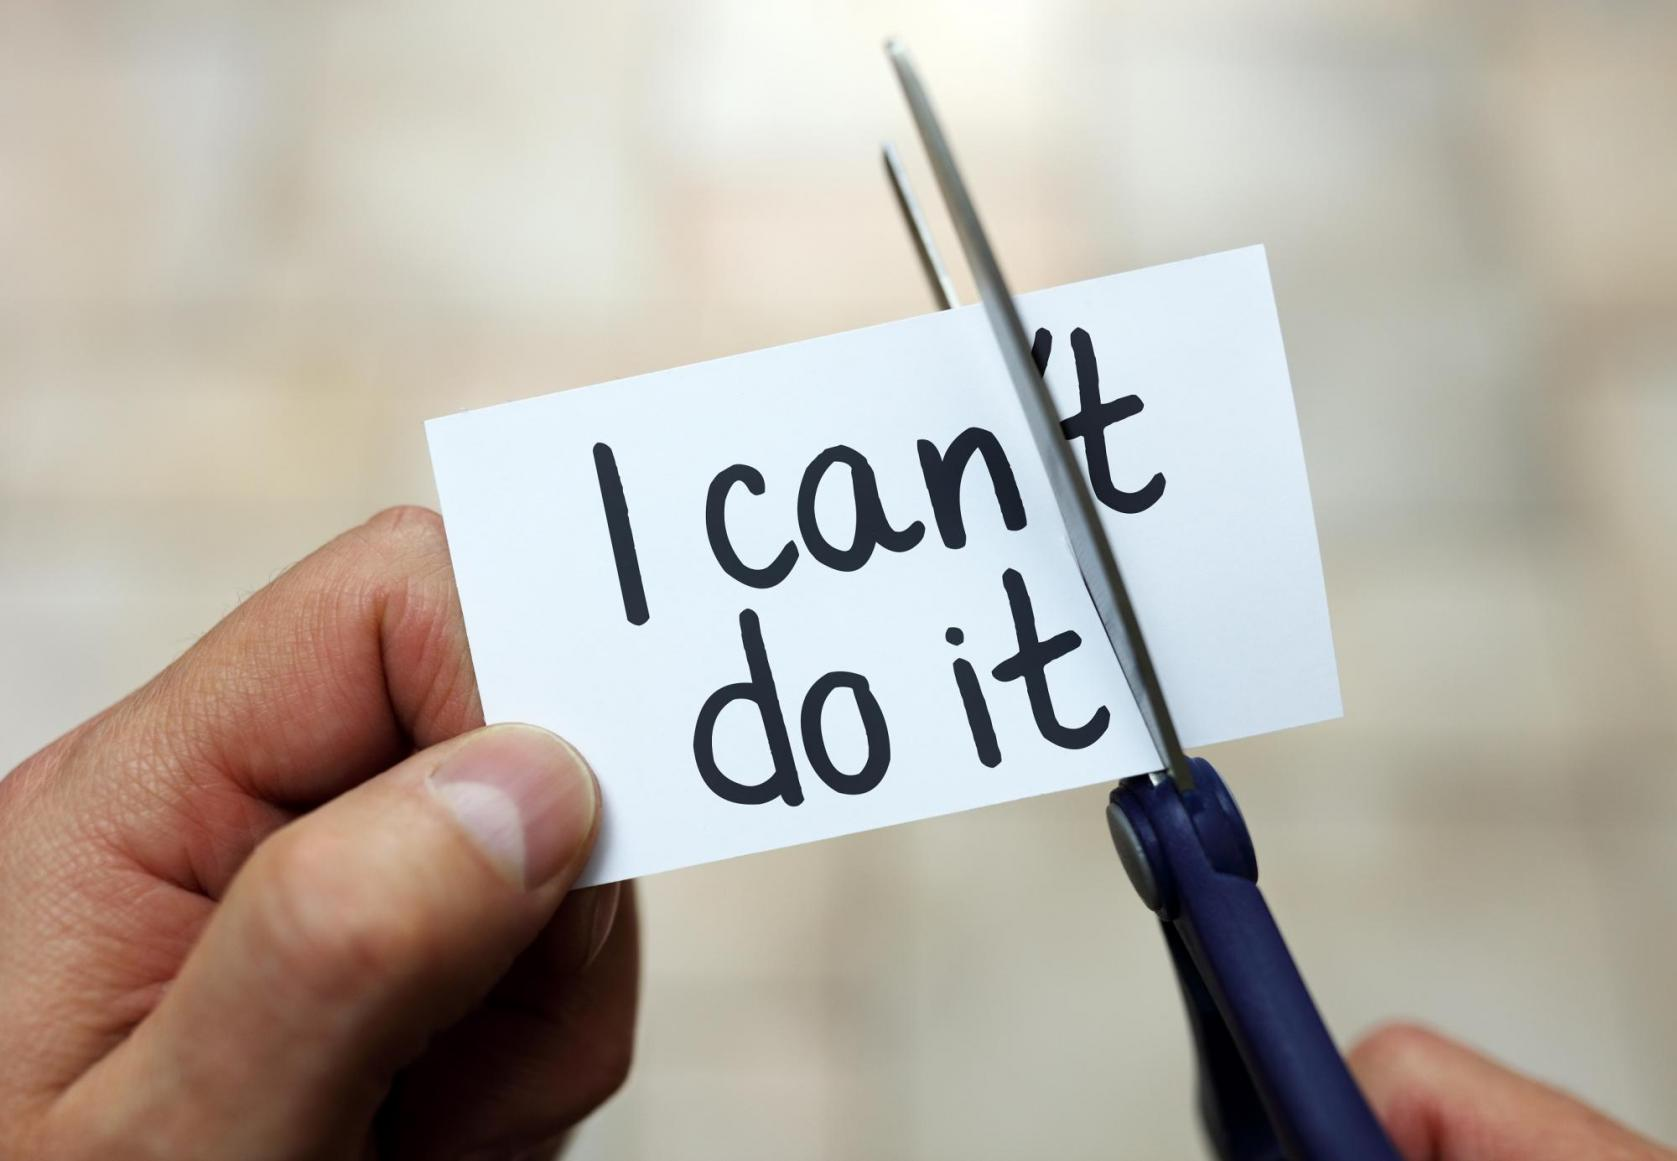 I can do it3